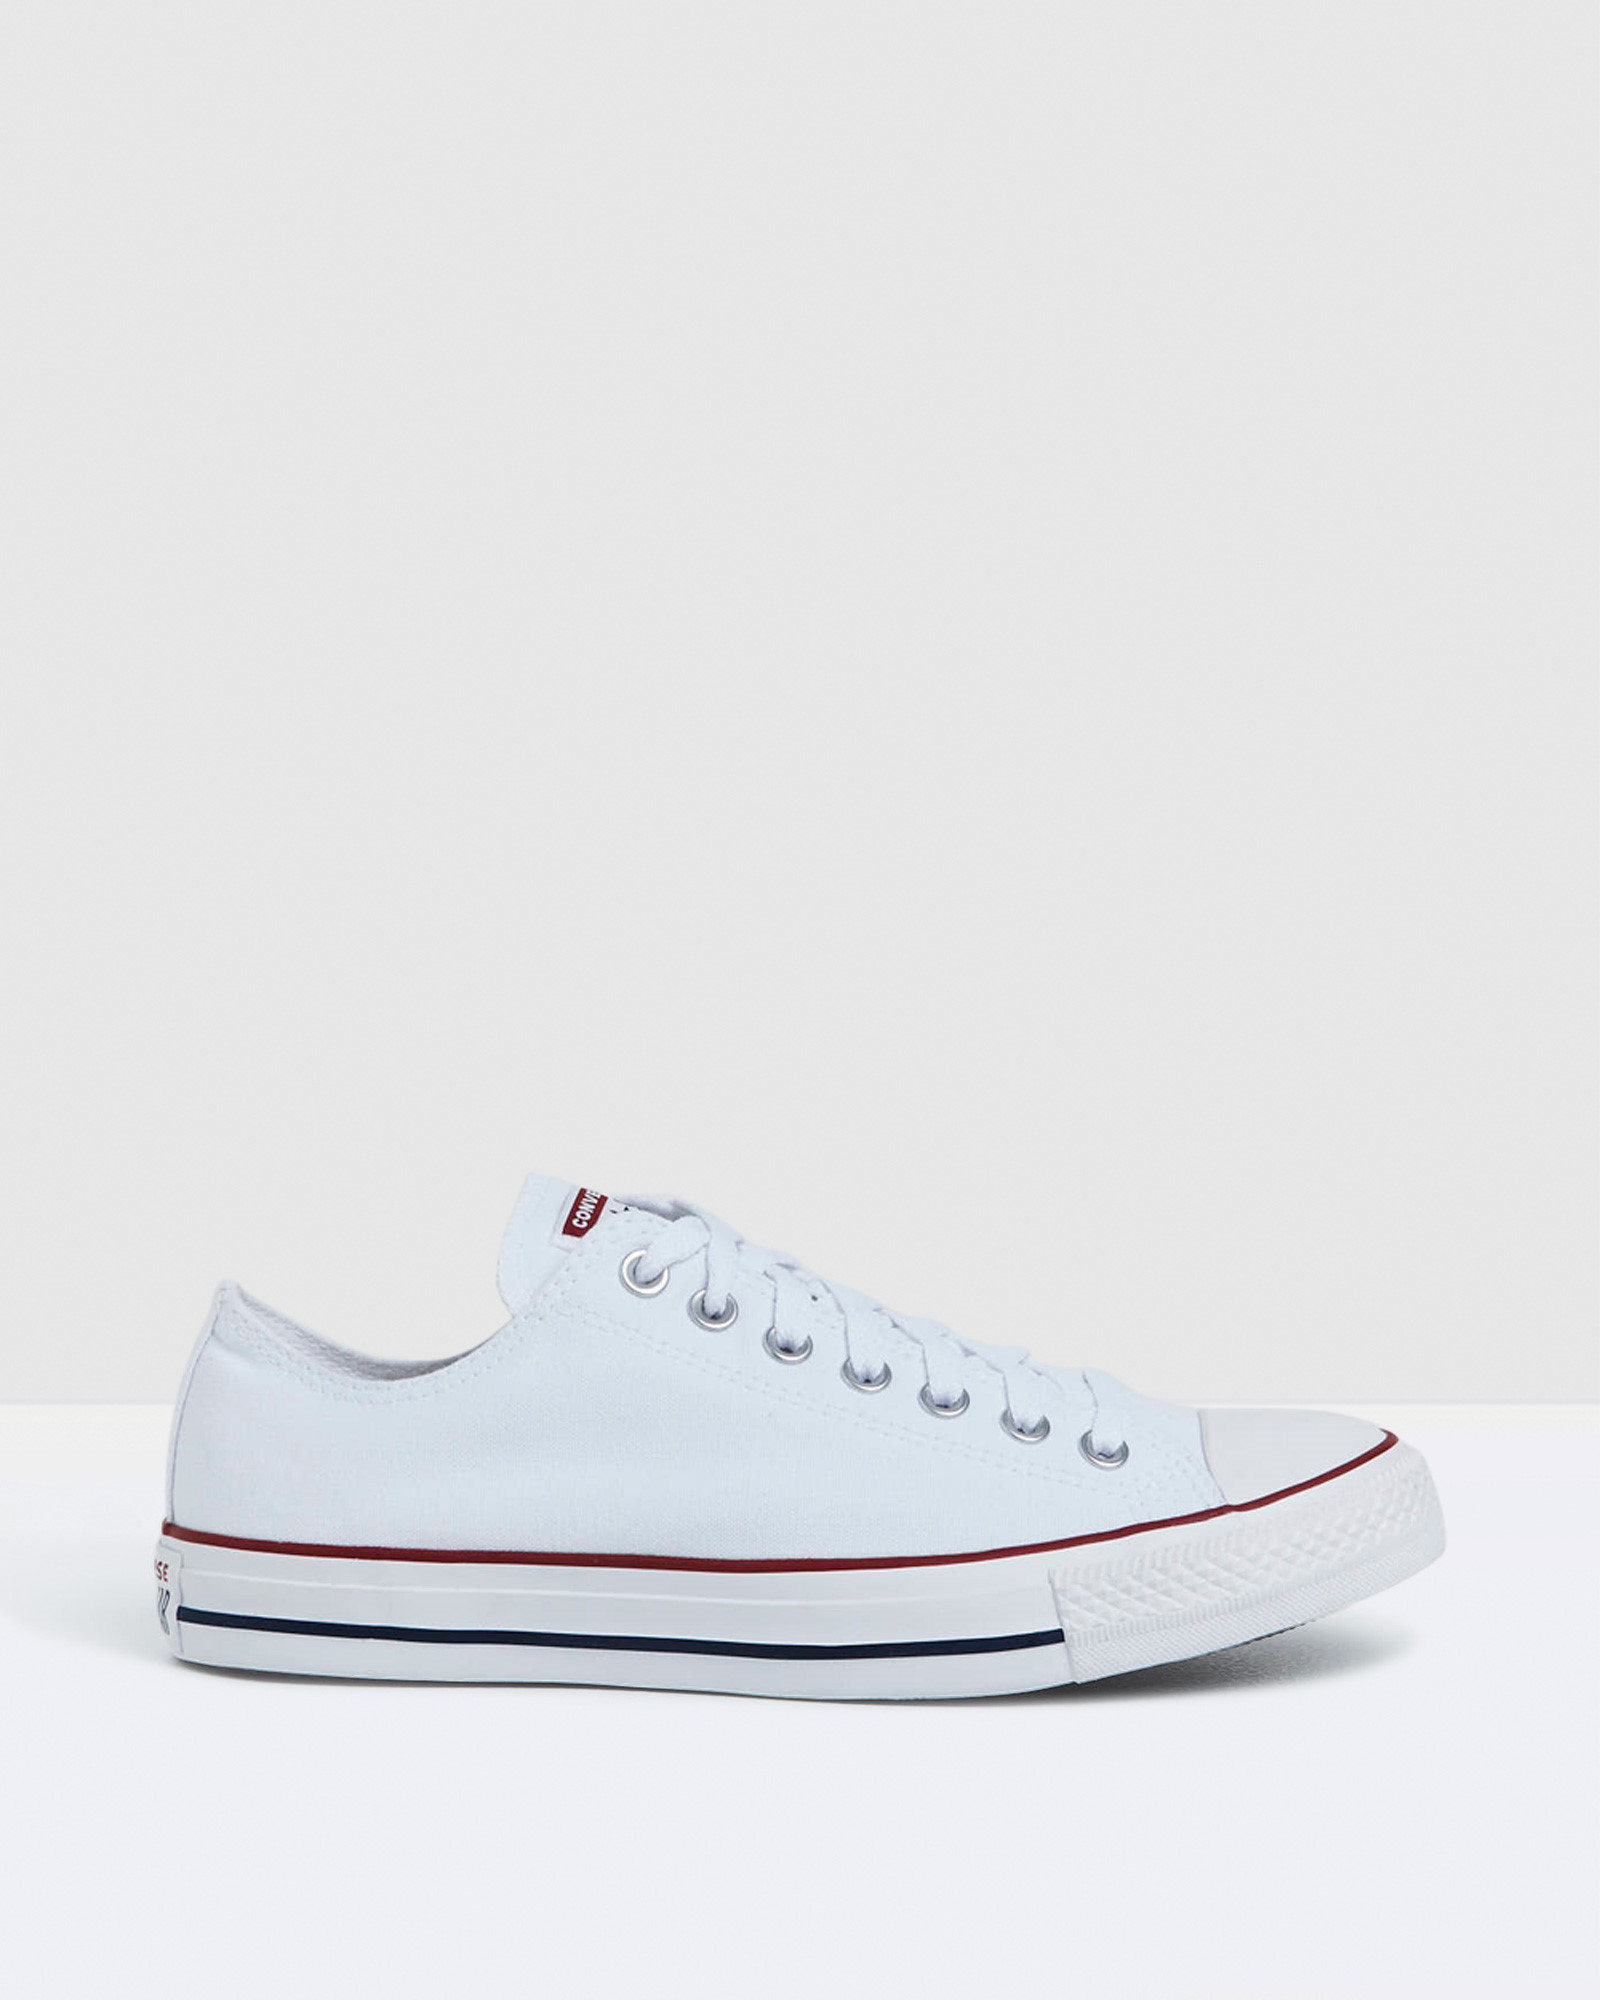 Converse - Chuck Taylor All Star Lo Canvas Sneakers White 11823400023